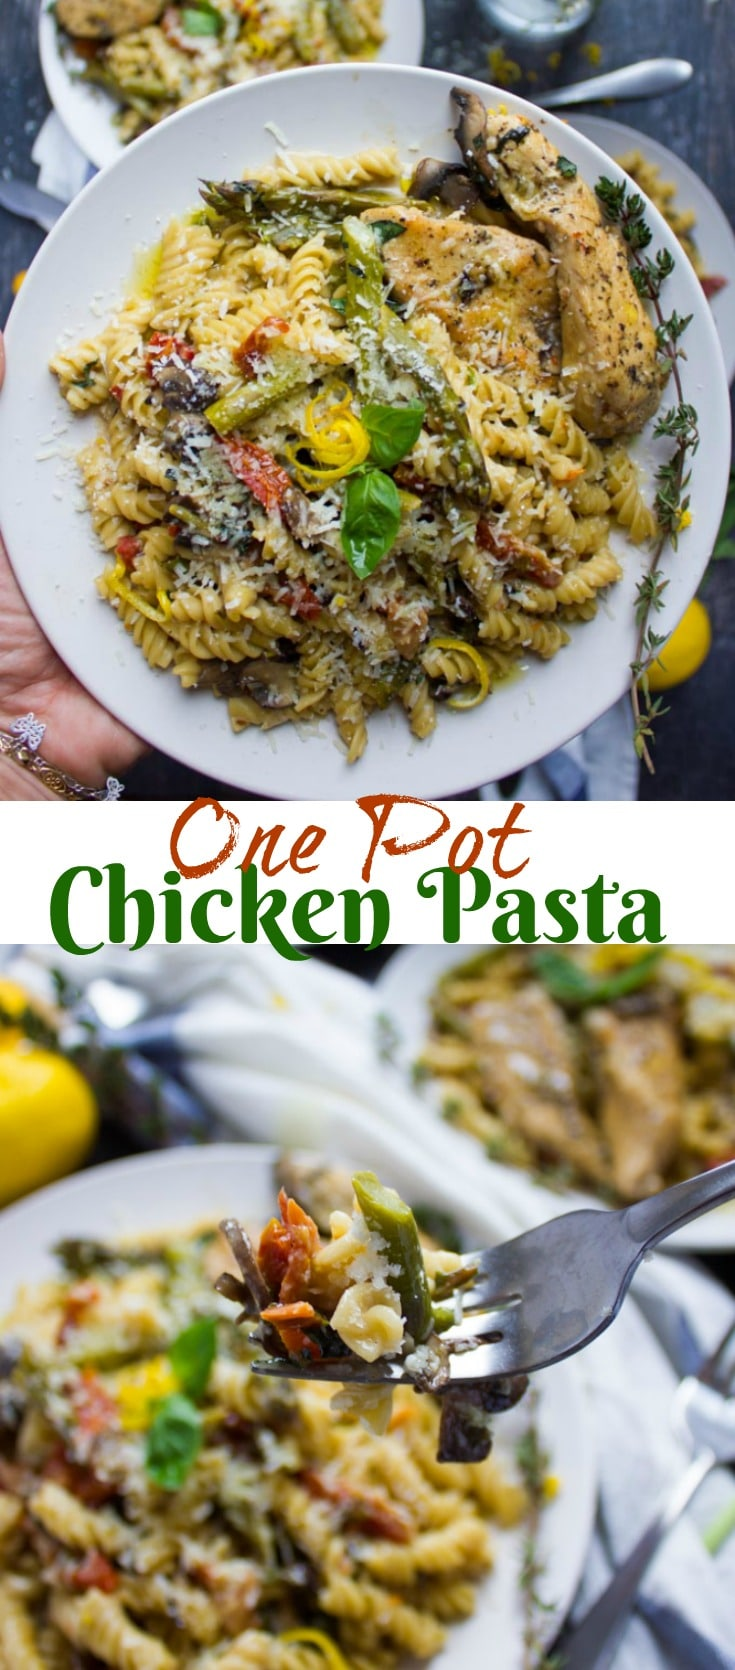 This quick, One-Pot Chicken Pasta Dinner is loaded with fresh veggies and packs a good serving of protein from the succulent chicken. The best part: it comes together in just 10 minutes of cooking time! #chickenpasta, #onepotpasta, #instantpotpasta